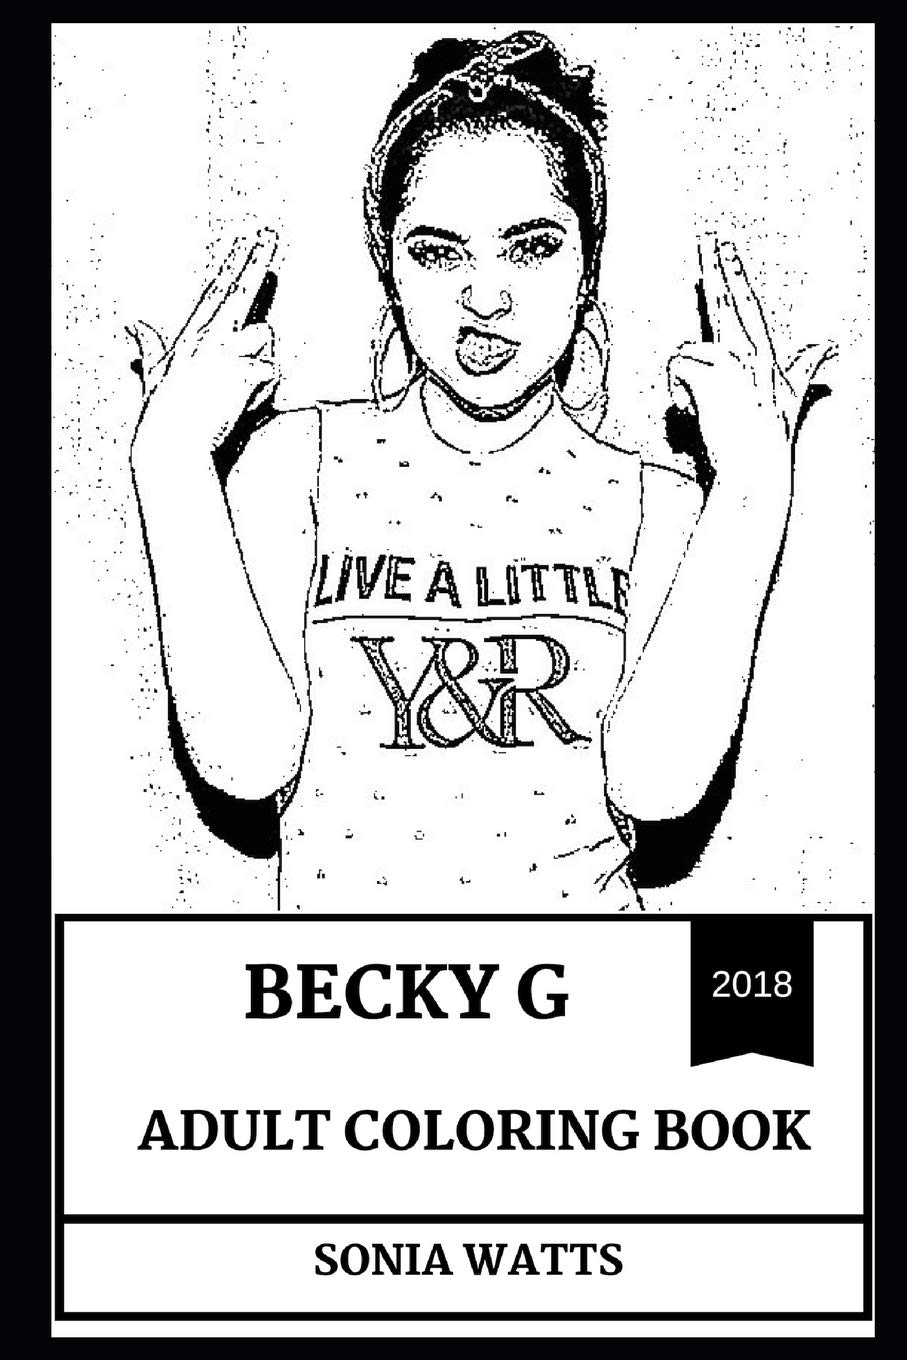 Becky g adult coloring book latin pop and hip hop star millennial talent and beautiful singer inspired adult coloring book becky g adult books paperback